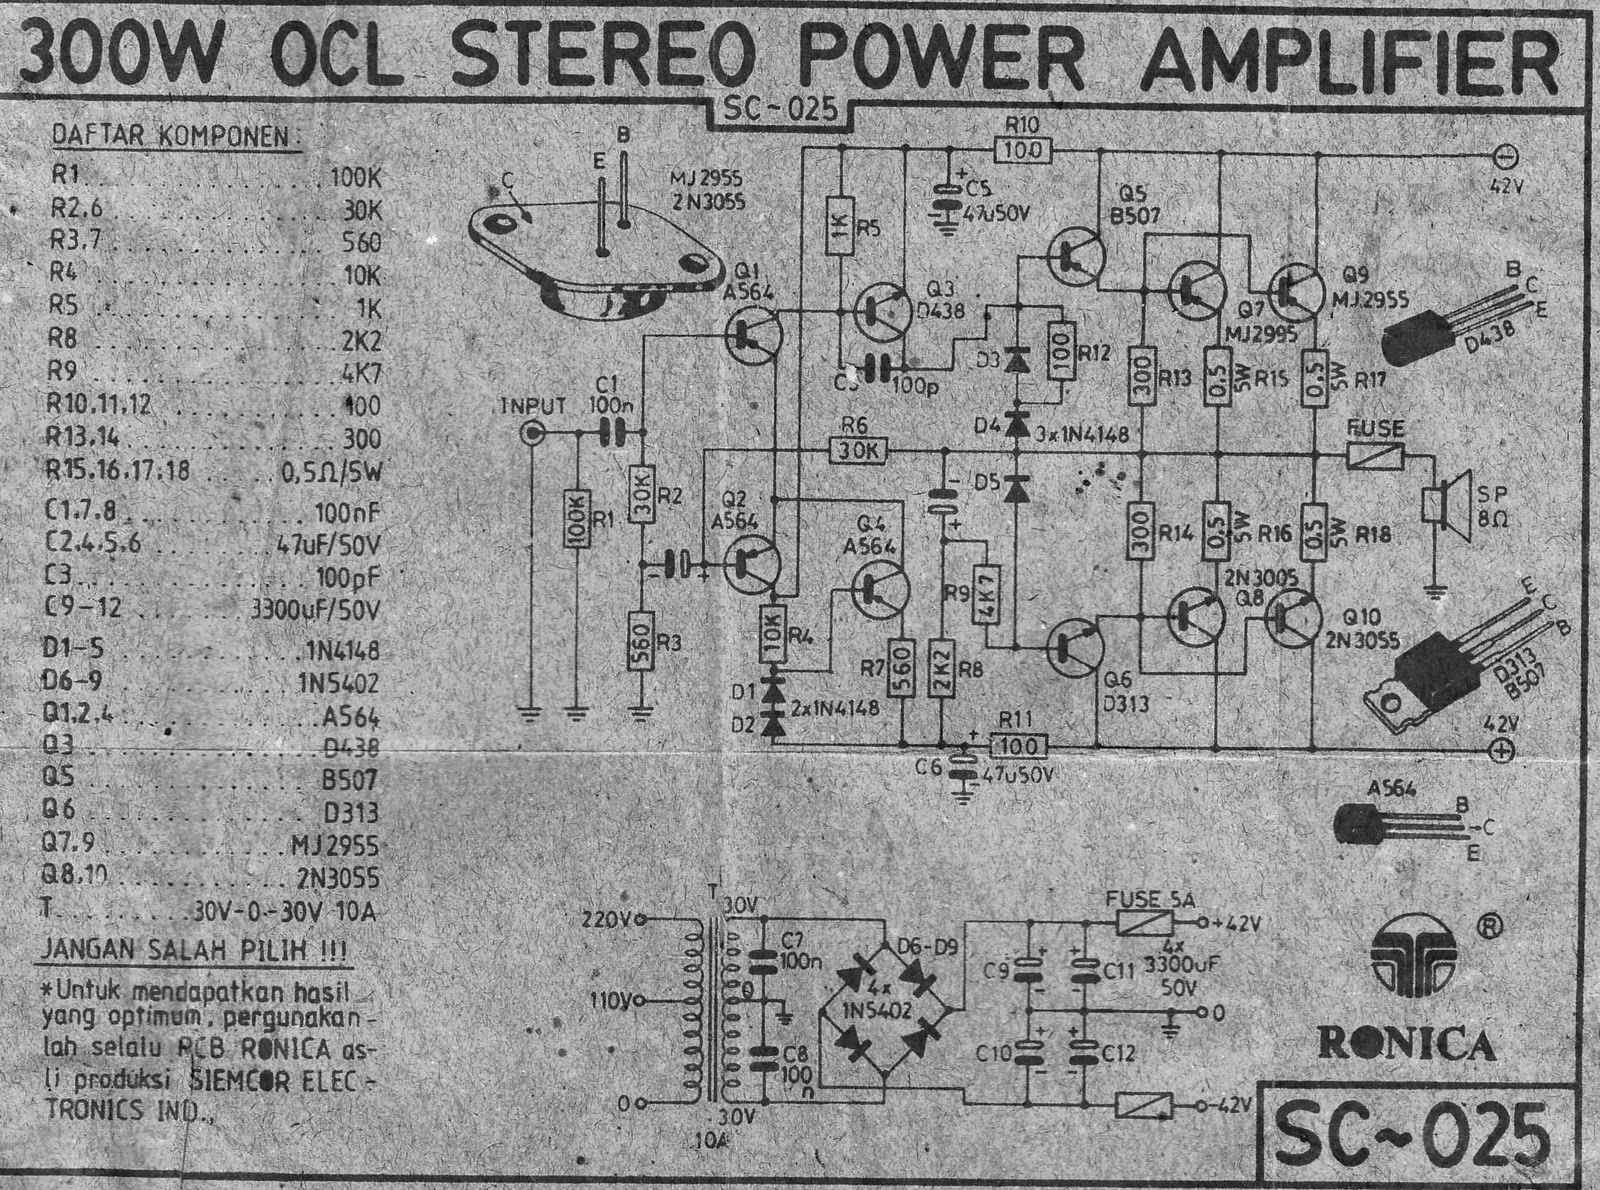 300w Ocl Power Amplifier Circuit Diagram Wiring Schema Img Block Together With Transistor Lifier Audiobbm Com Lets Do It Audio Amplifiers Schematic